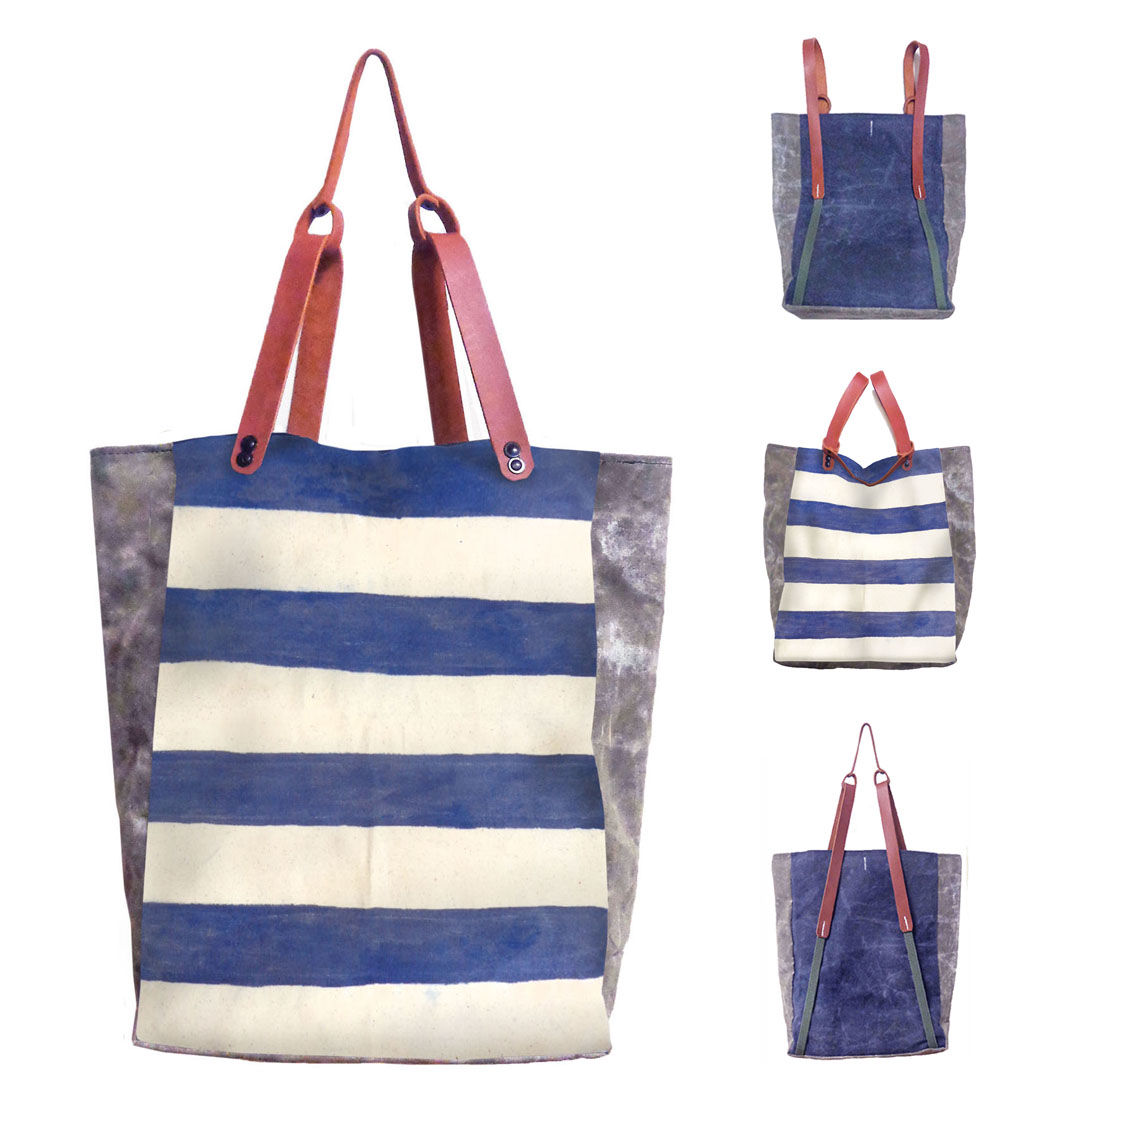 Convertible Bodega Tote, Backpack - Indigo Stripe - product images  of